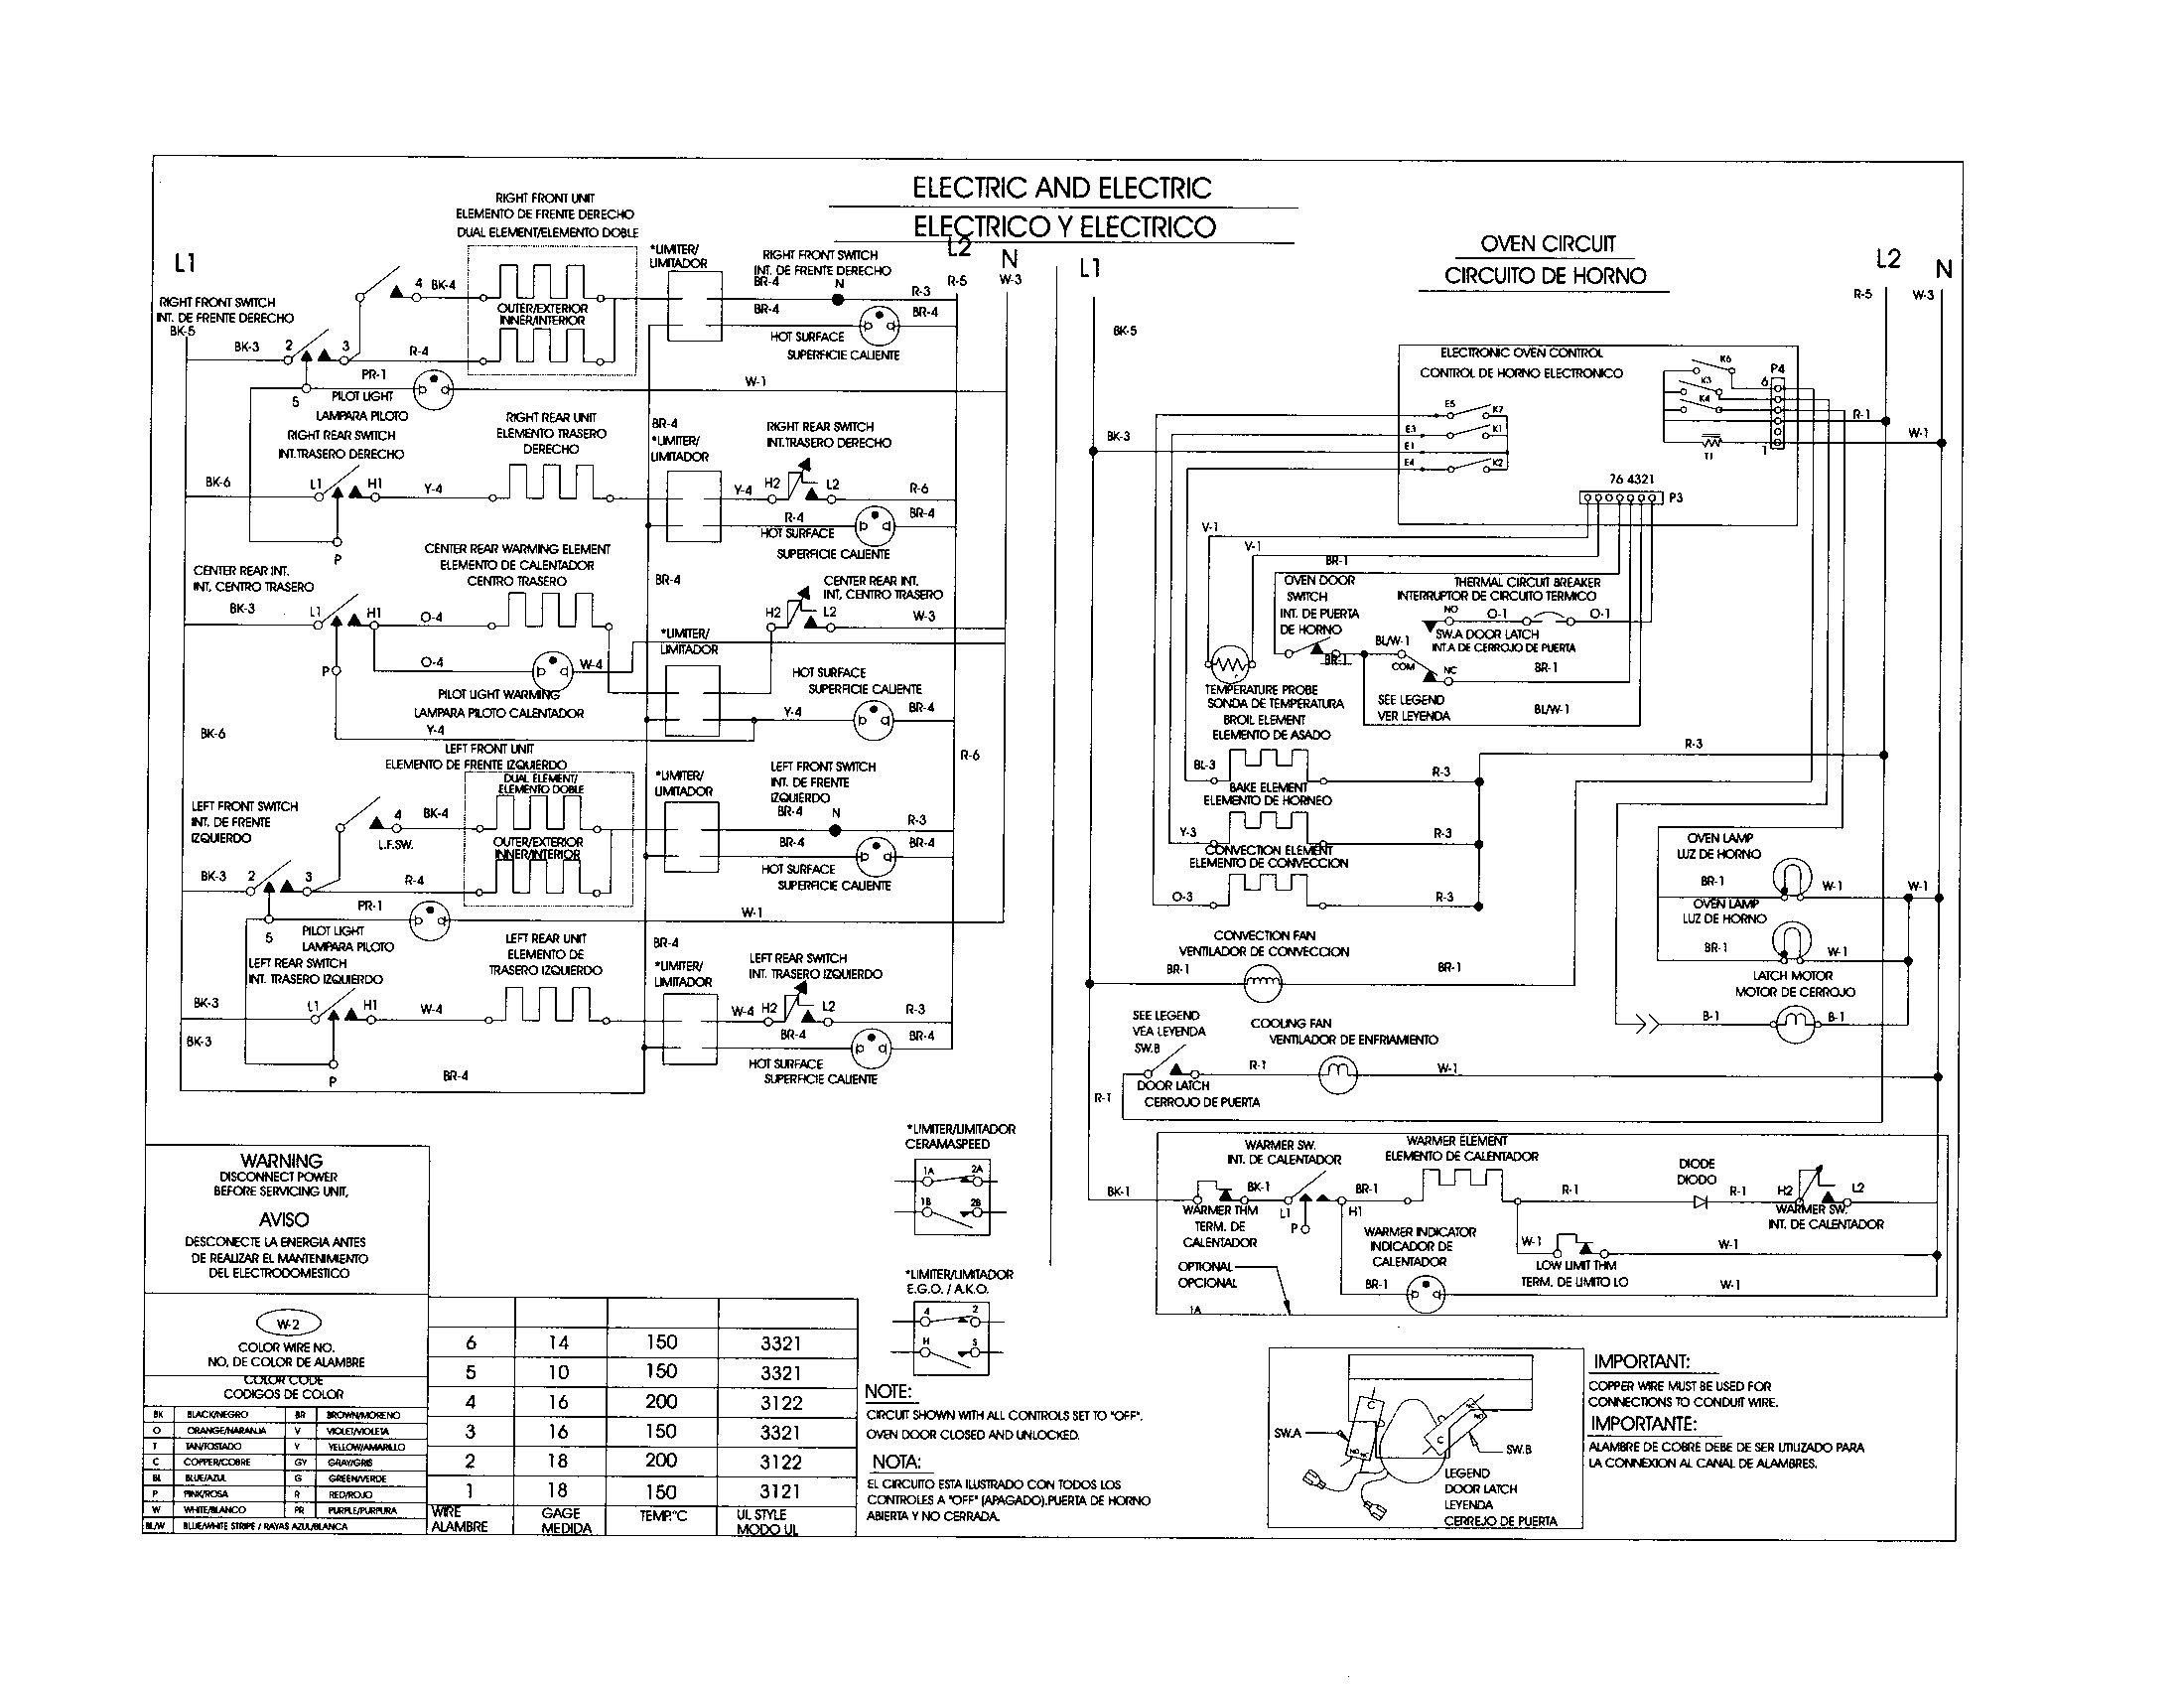 Kenmore Dryer Wiring Diagram Wiring Diagram for Kenmore Elite Refrigerator Copy Electrical and Of Kenmore Dryer Wiring Diagram